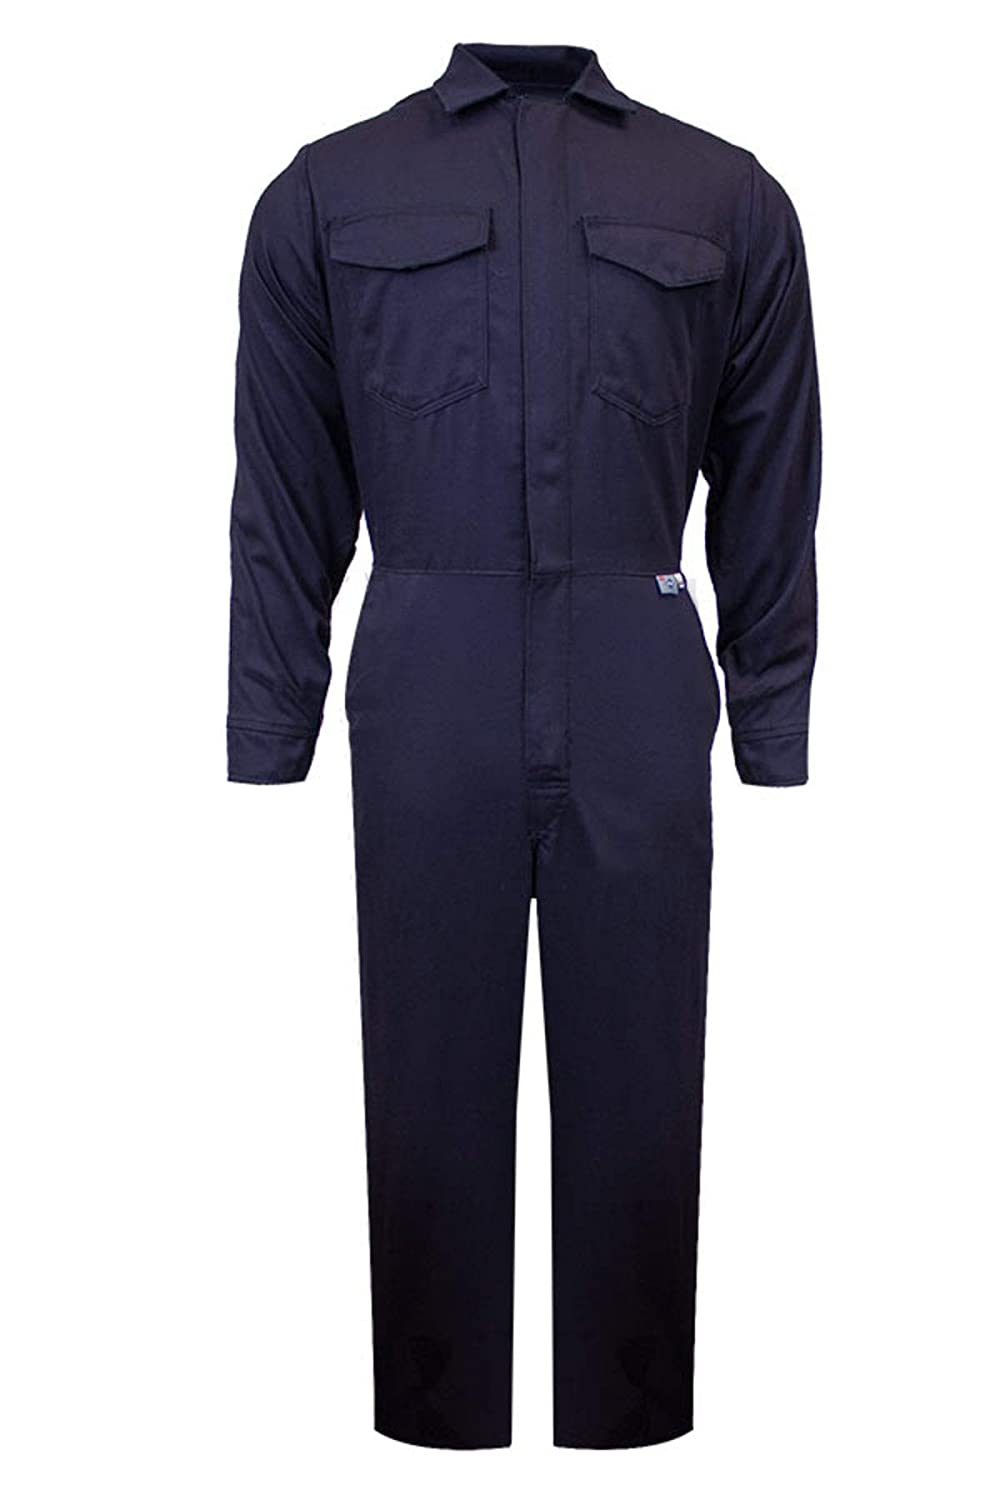 Navy National Safety Apparel C88UPXL30 ArcGuard Ultrasoft Arc Flash Coverall X-Large